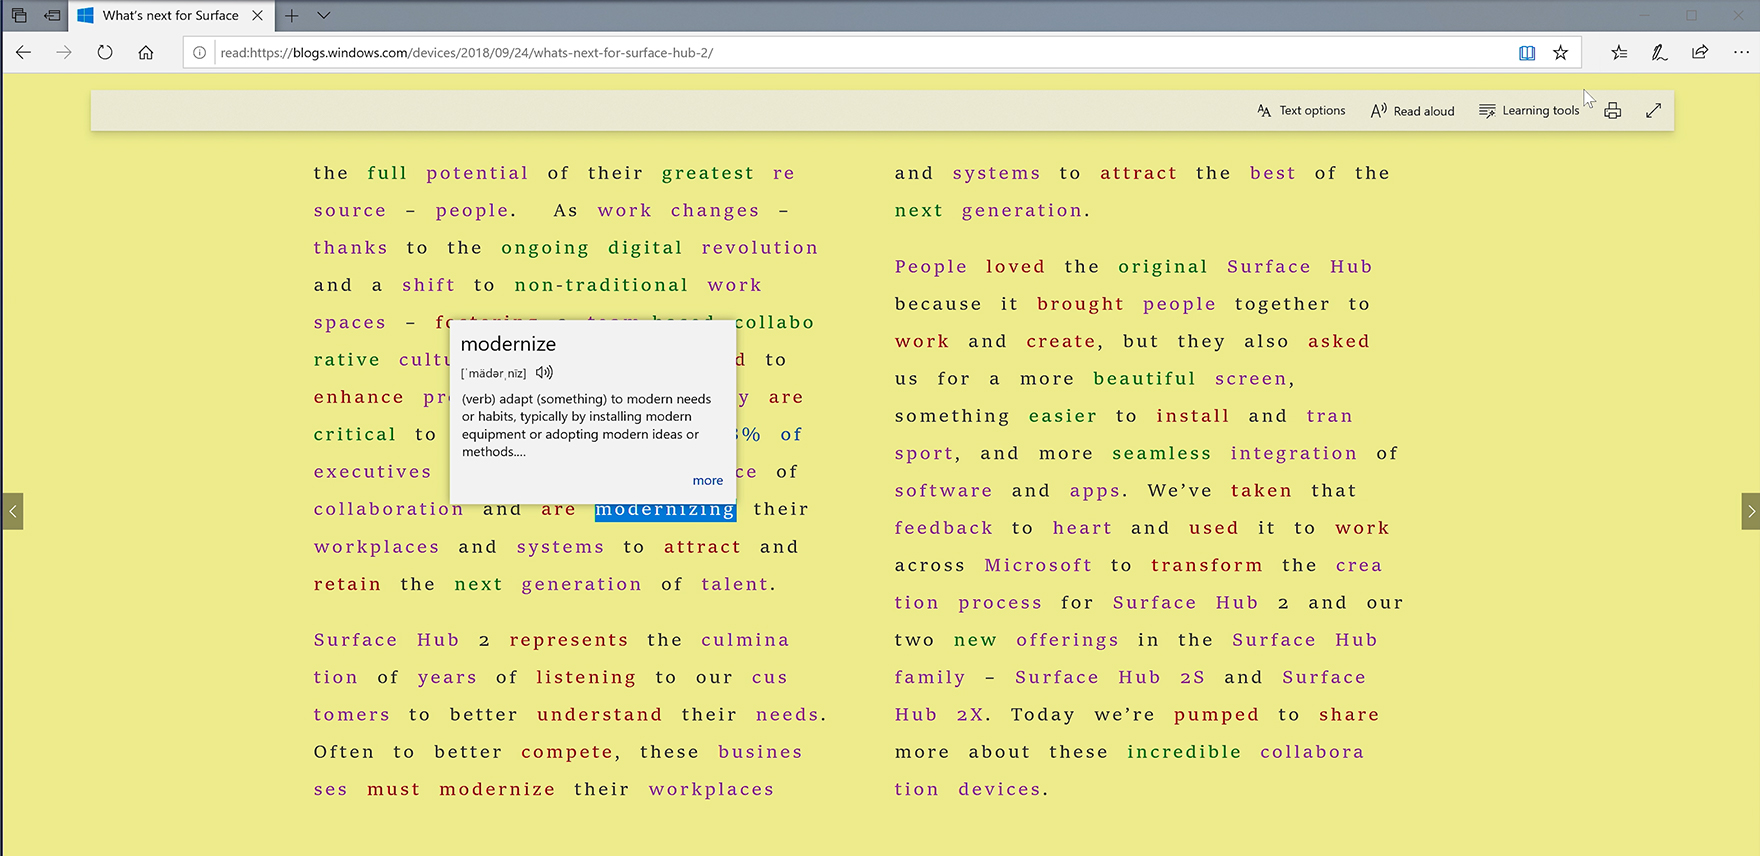 Windows 10 Tip: Look up definitions for words in web pages